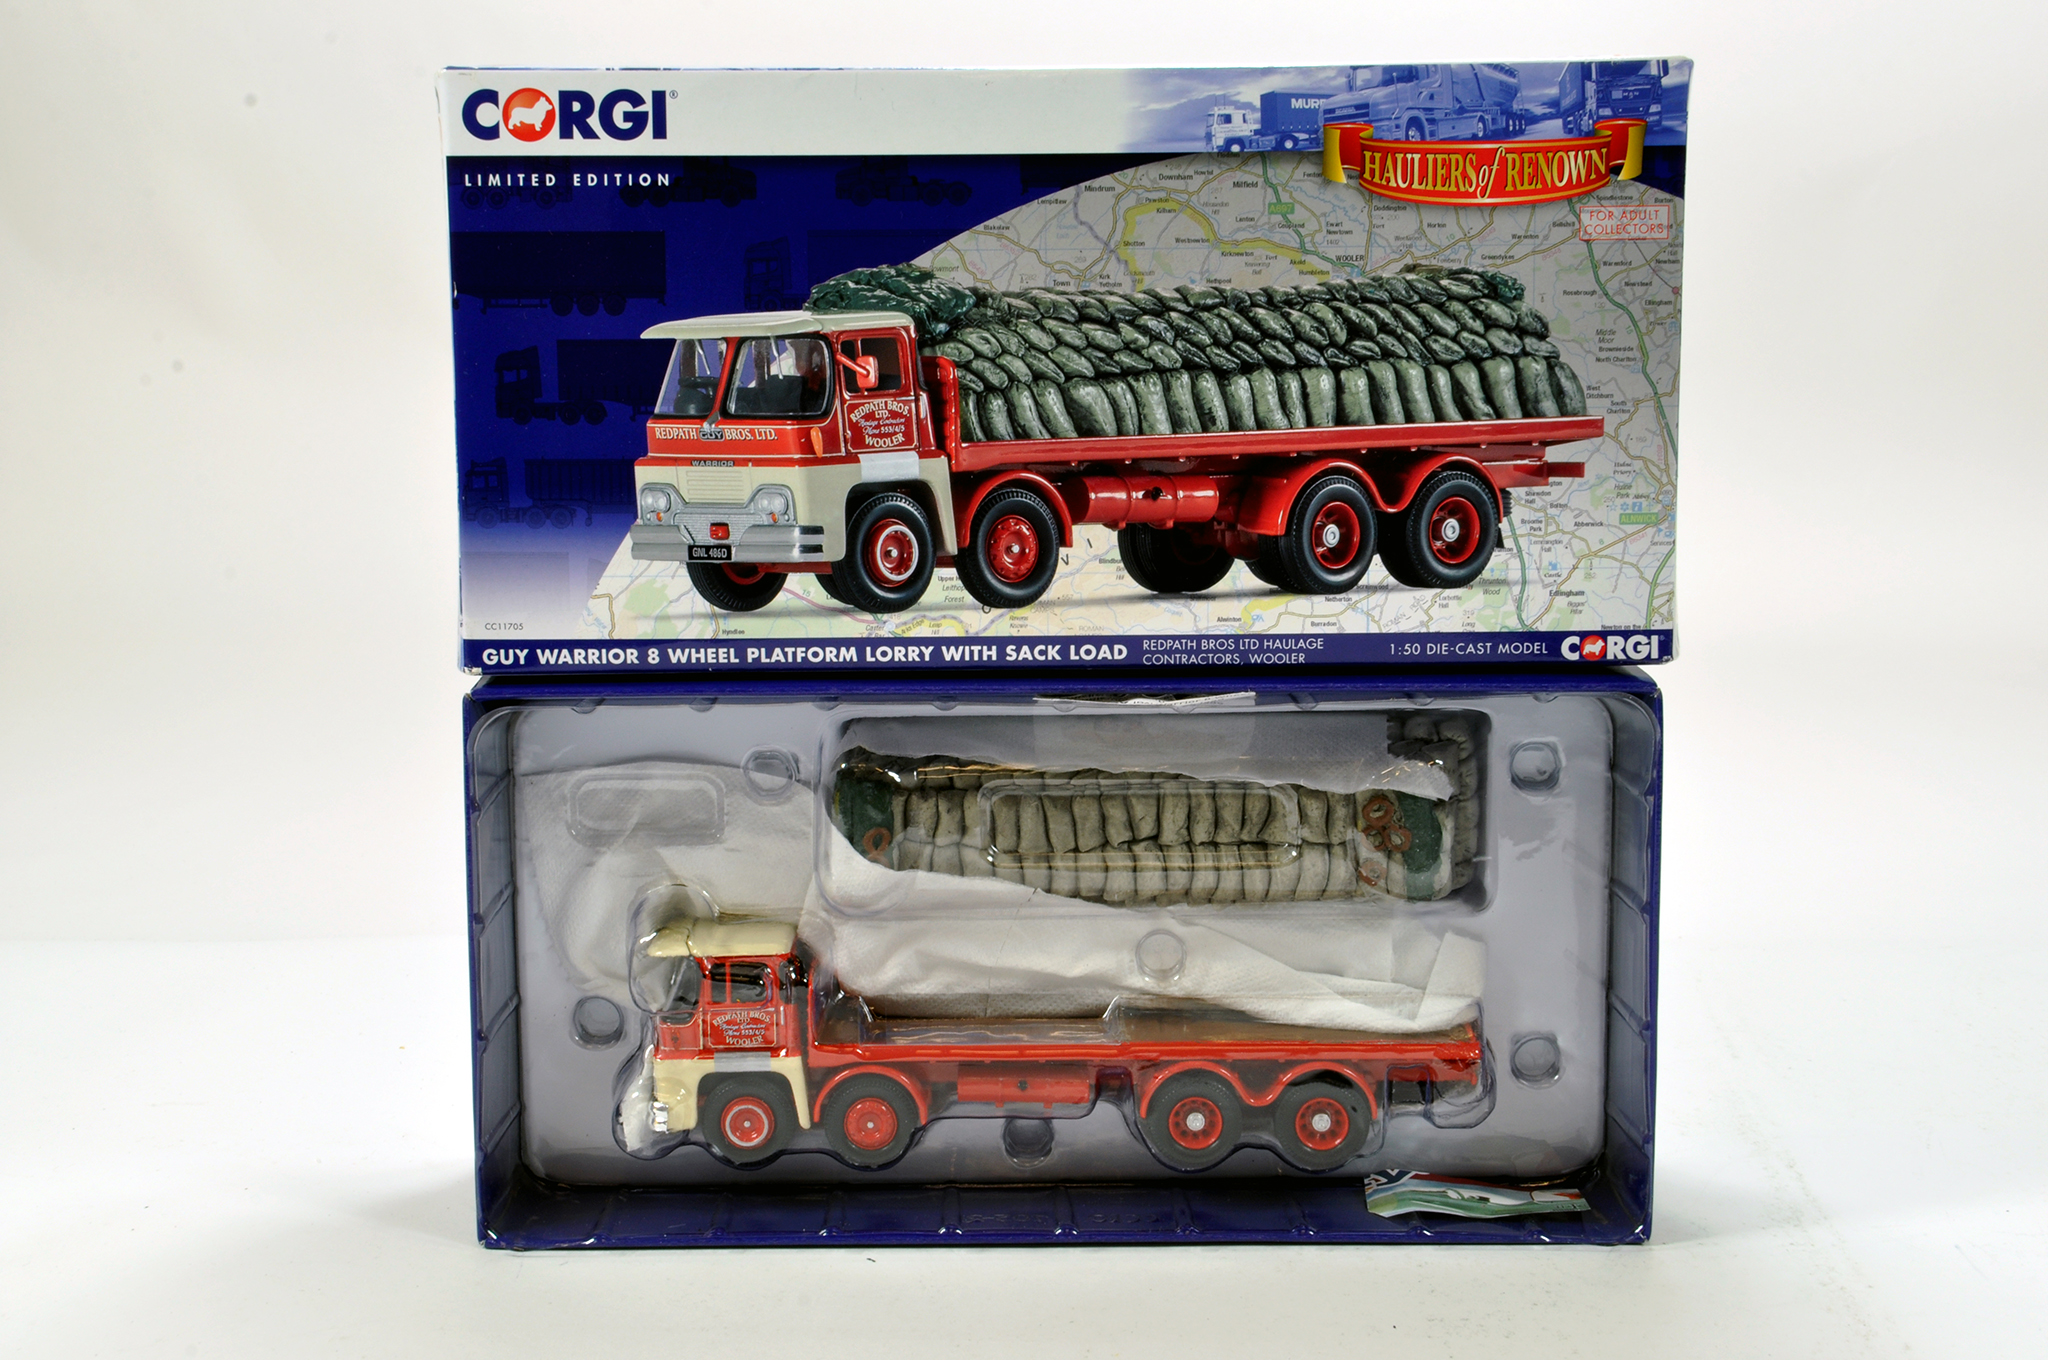 Lot 58 - Corgi 1/50 diecast truck issue comprising No. CC11705 Guy Warrior 9 Wheel Lorry in livery of Redpath